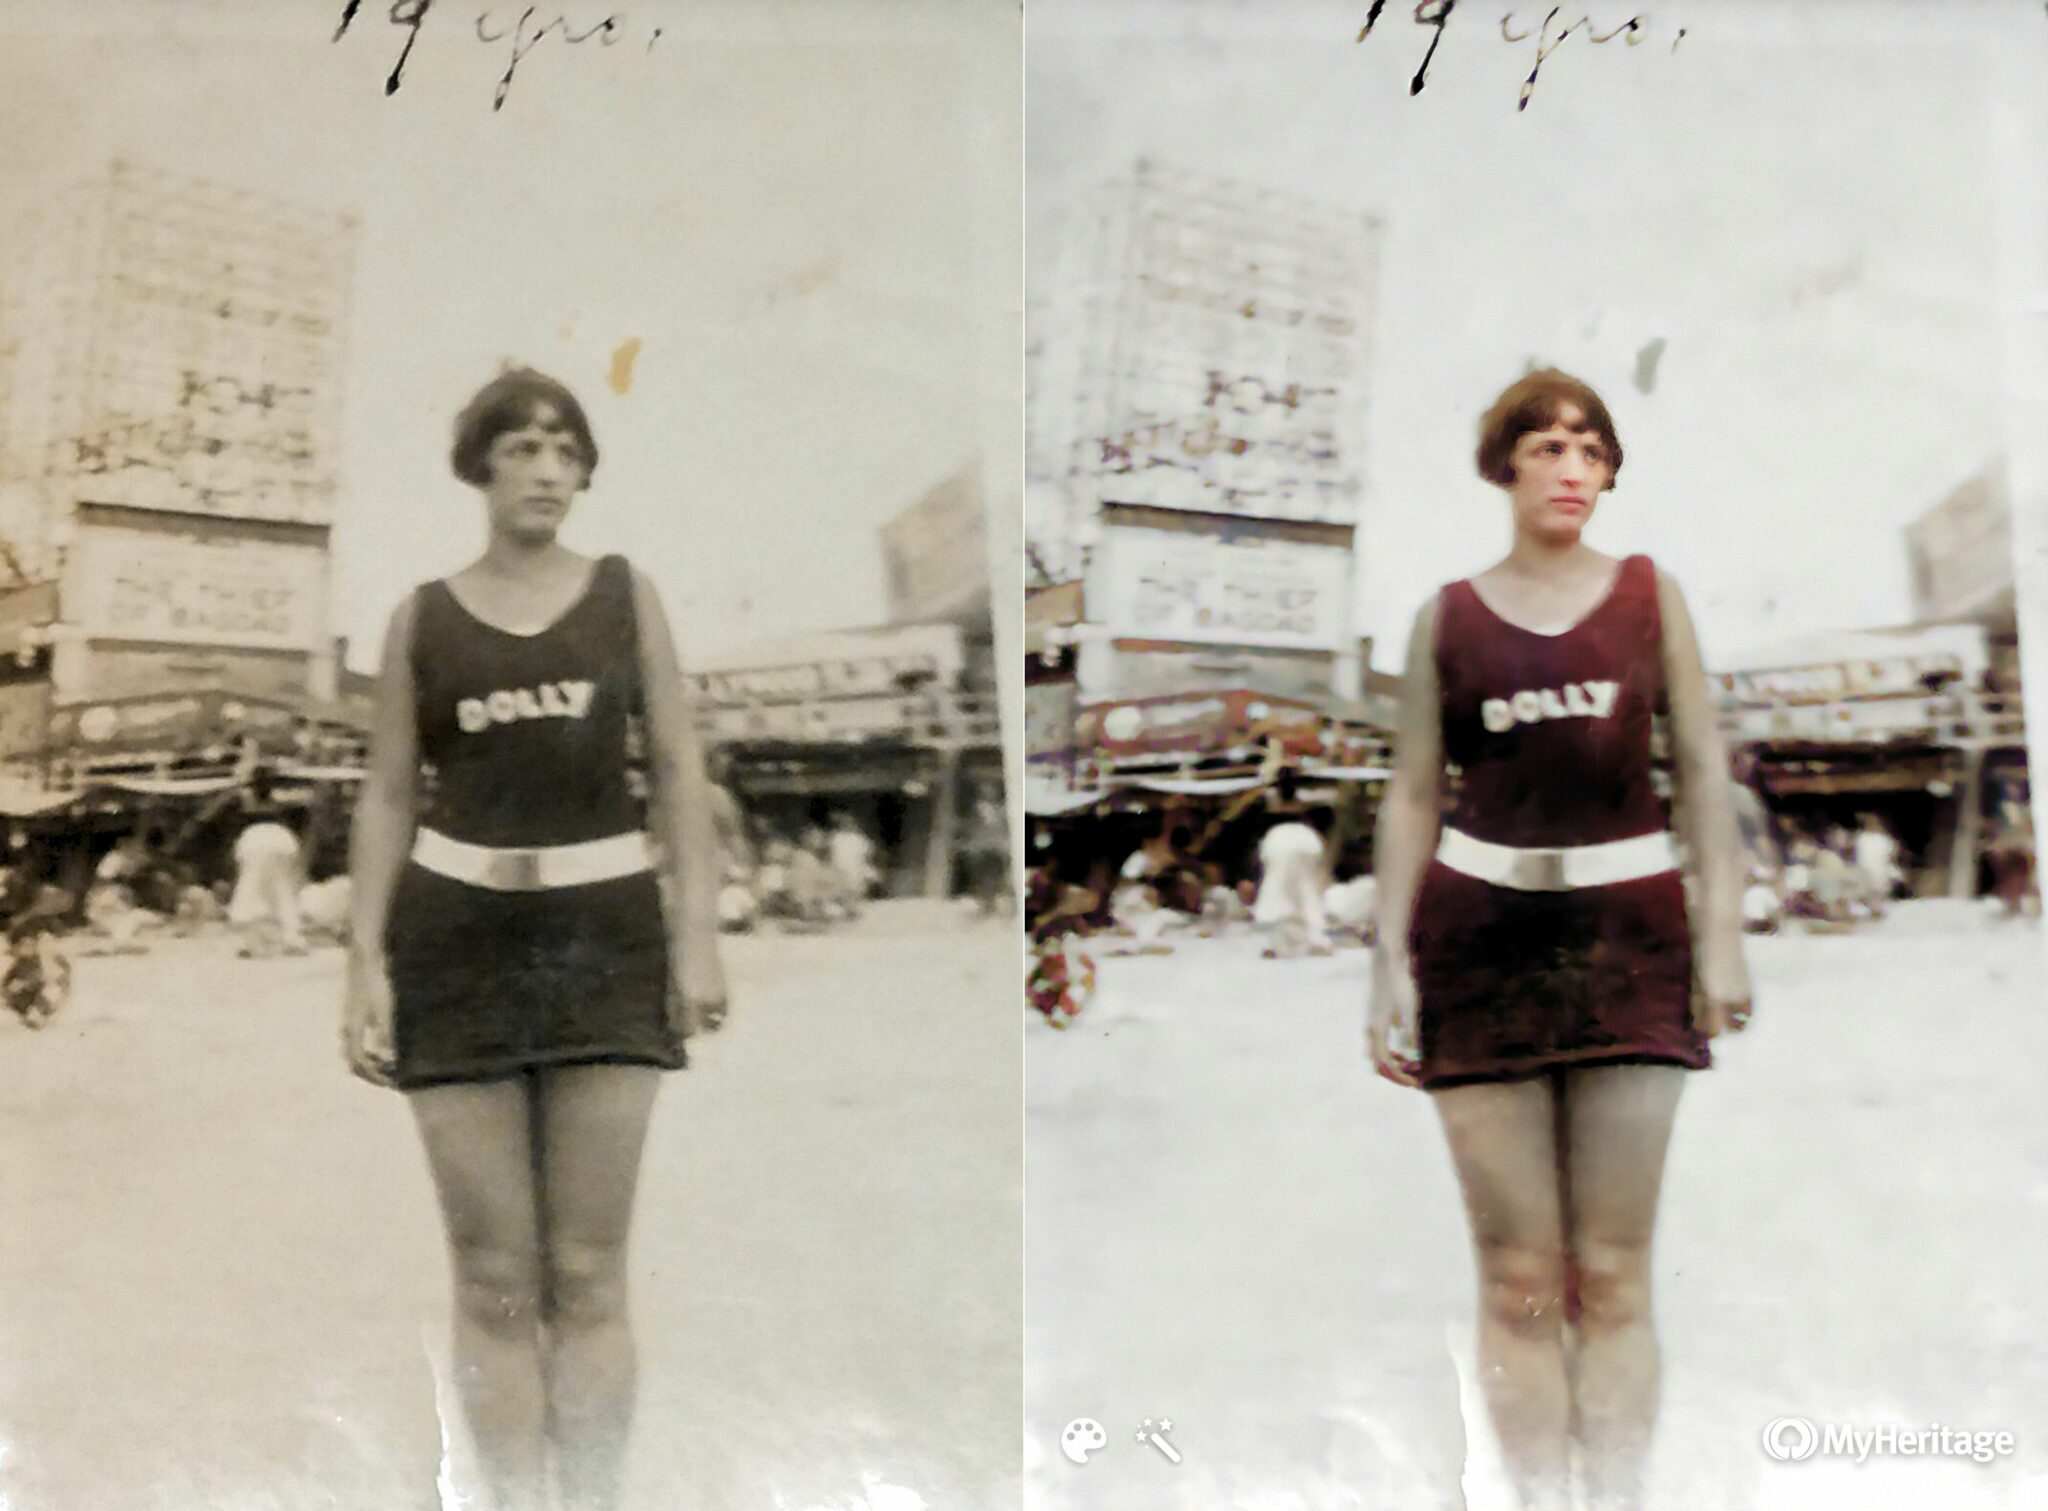 Comparison of Larger Image MyHeritage Colorizer and Enhancer